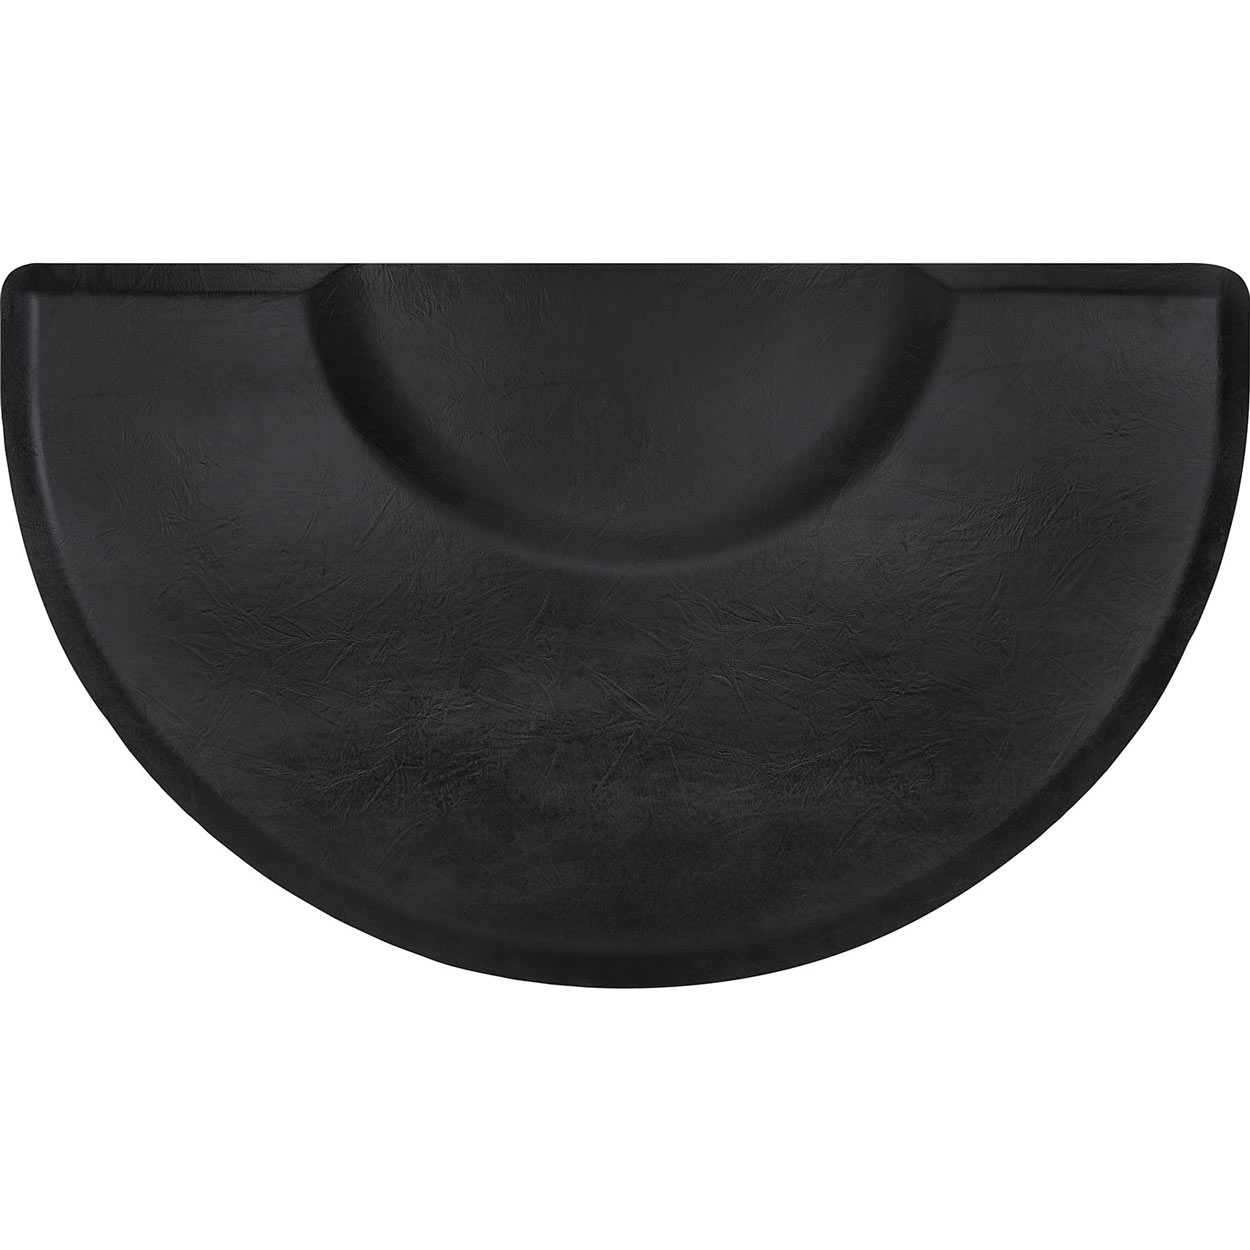 3x5 Vintage Leather Semicircle Anti-Fatigue Salon Mat alternative product image 2